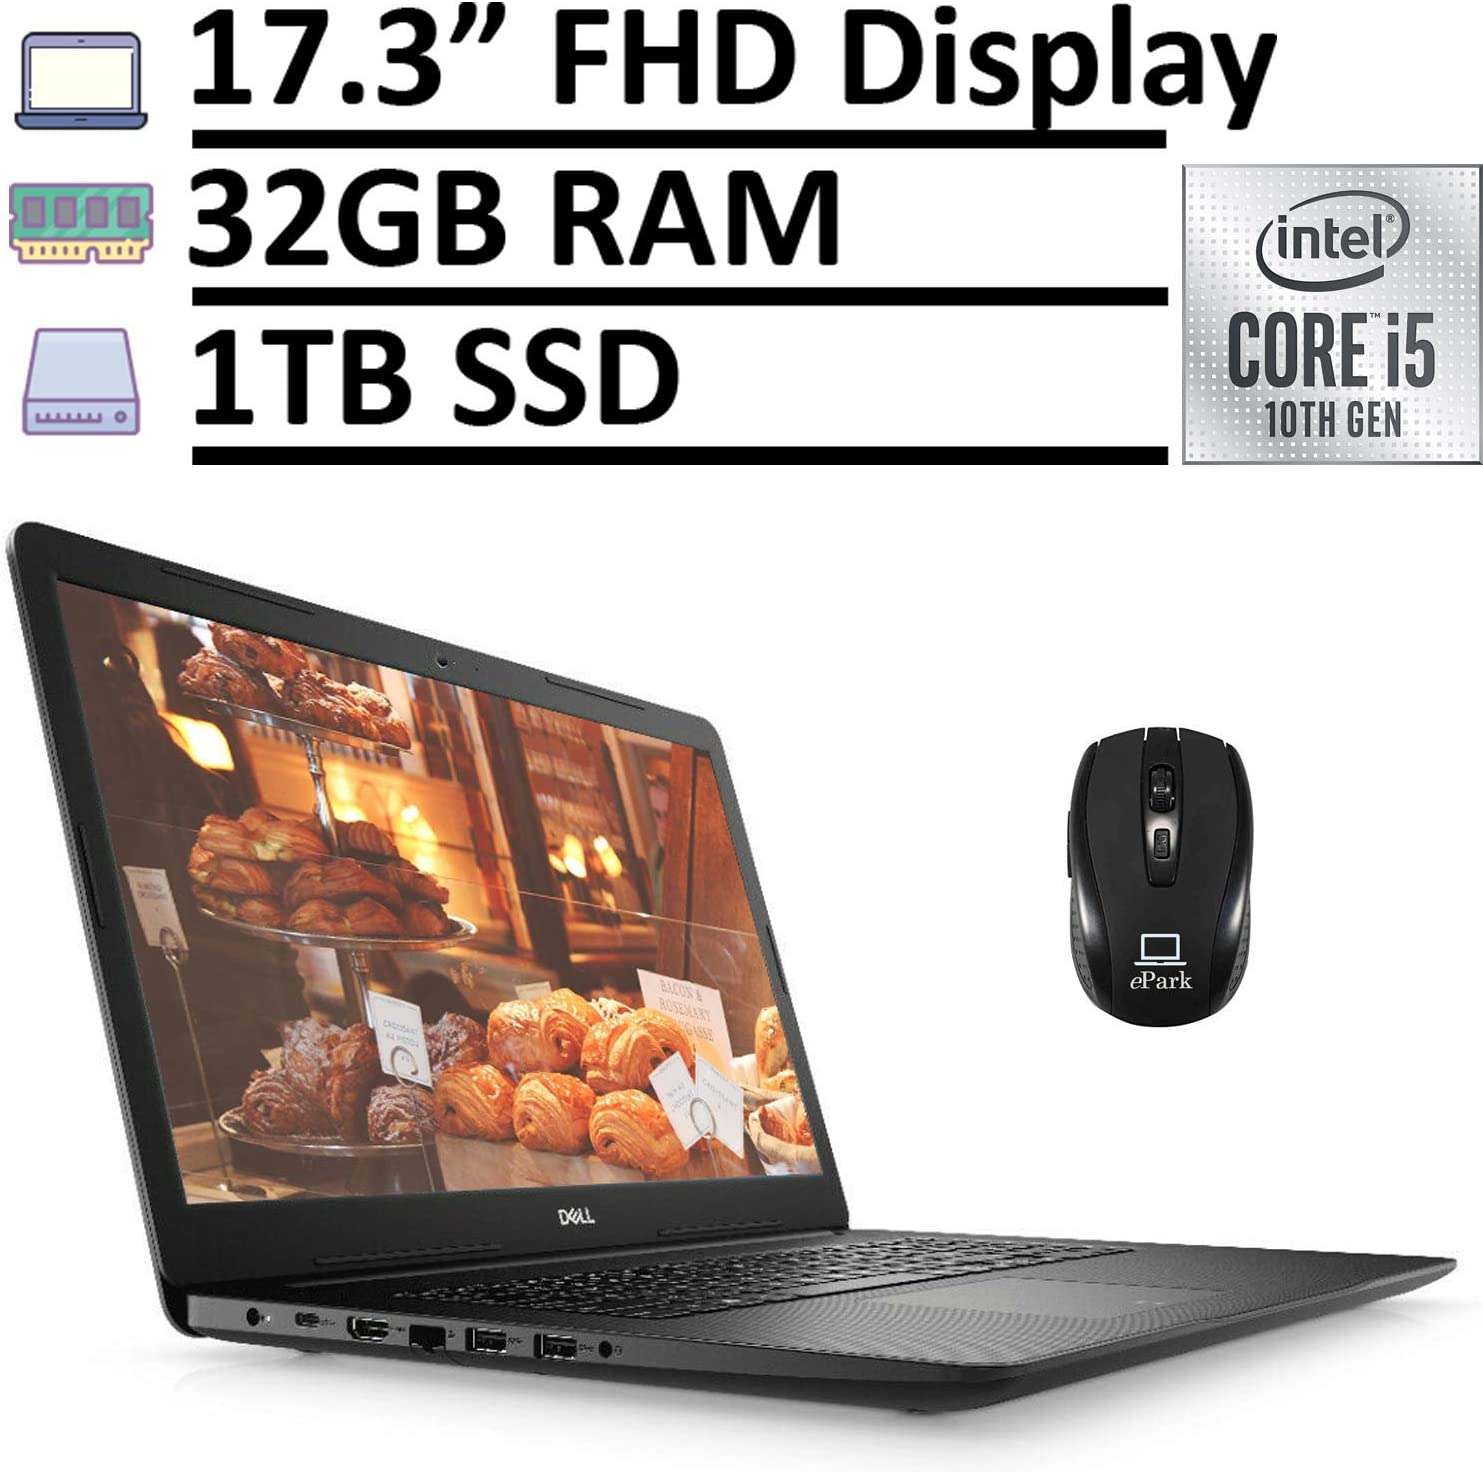 "2020 Newest Dell Inspiron 17 3000 3793 Laptop Computer, 17.3"" FHD 1080p Anti-Glare Display, 10th Gen Intel Core i5-1035G1 32GB RAM 1TB SSD, Webcam Type-C Win 10 + ePark Wireless Mouse"